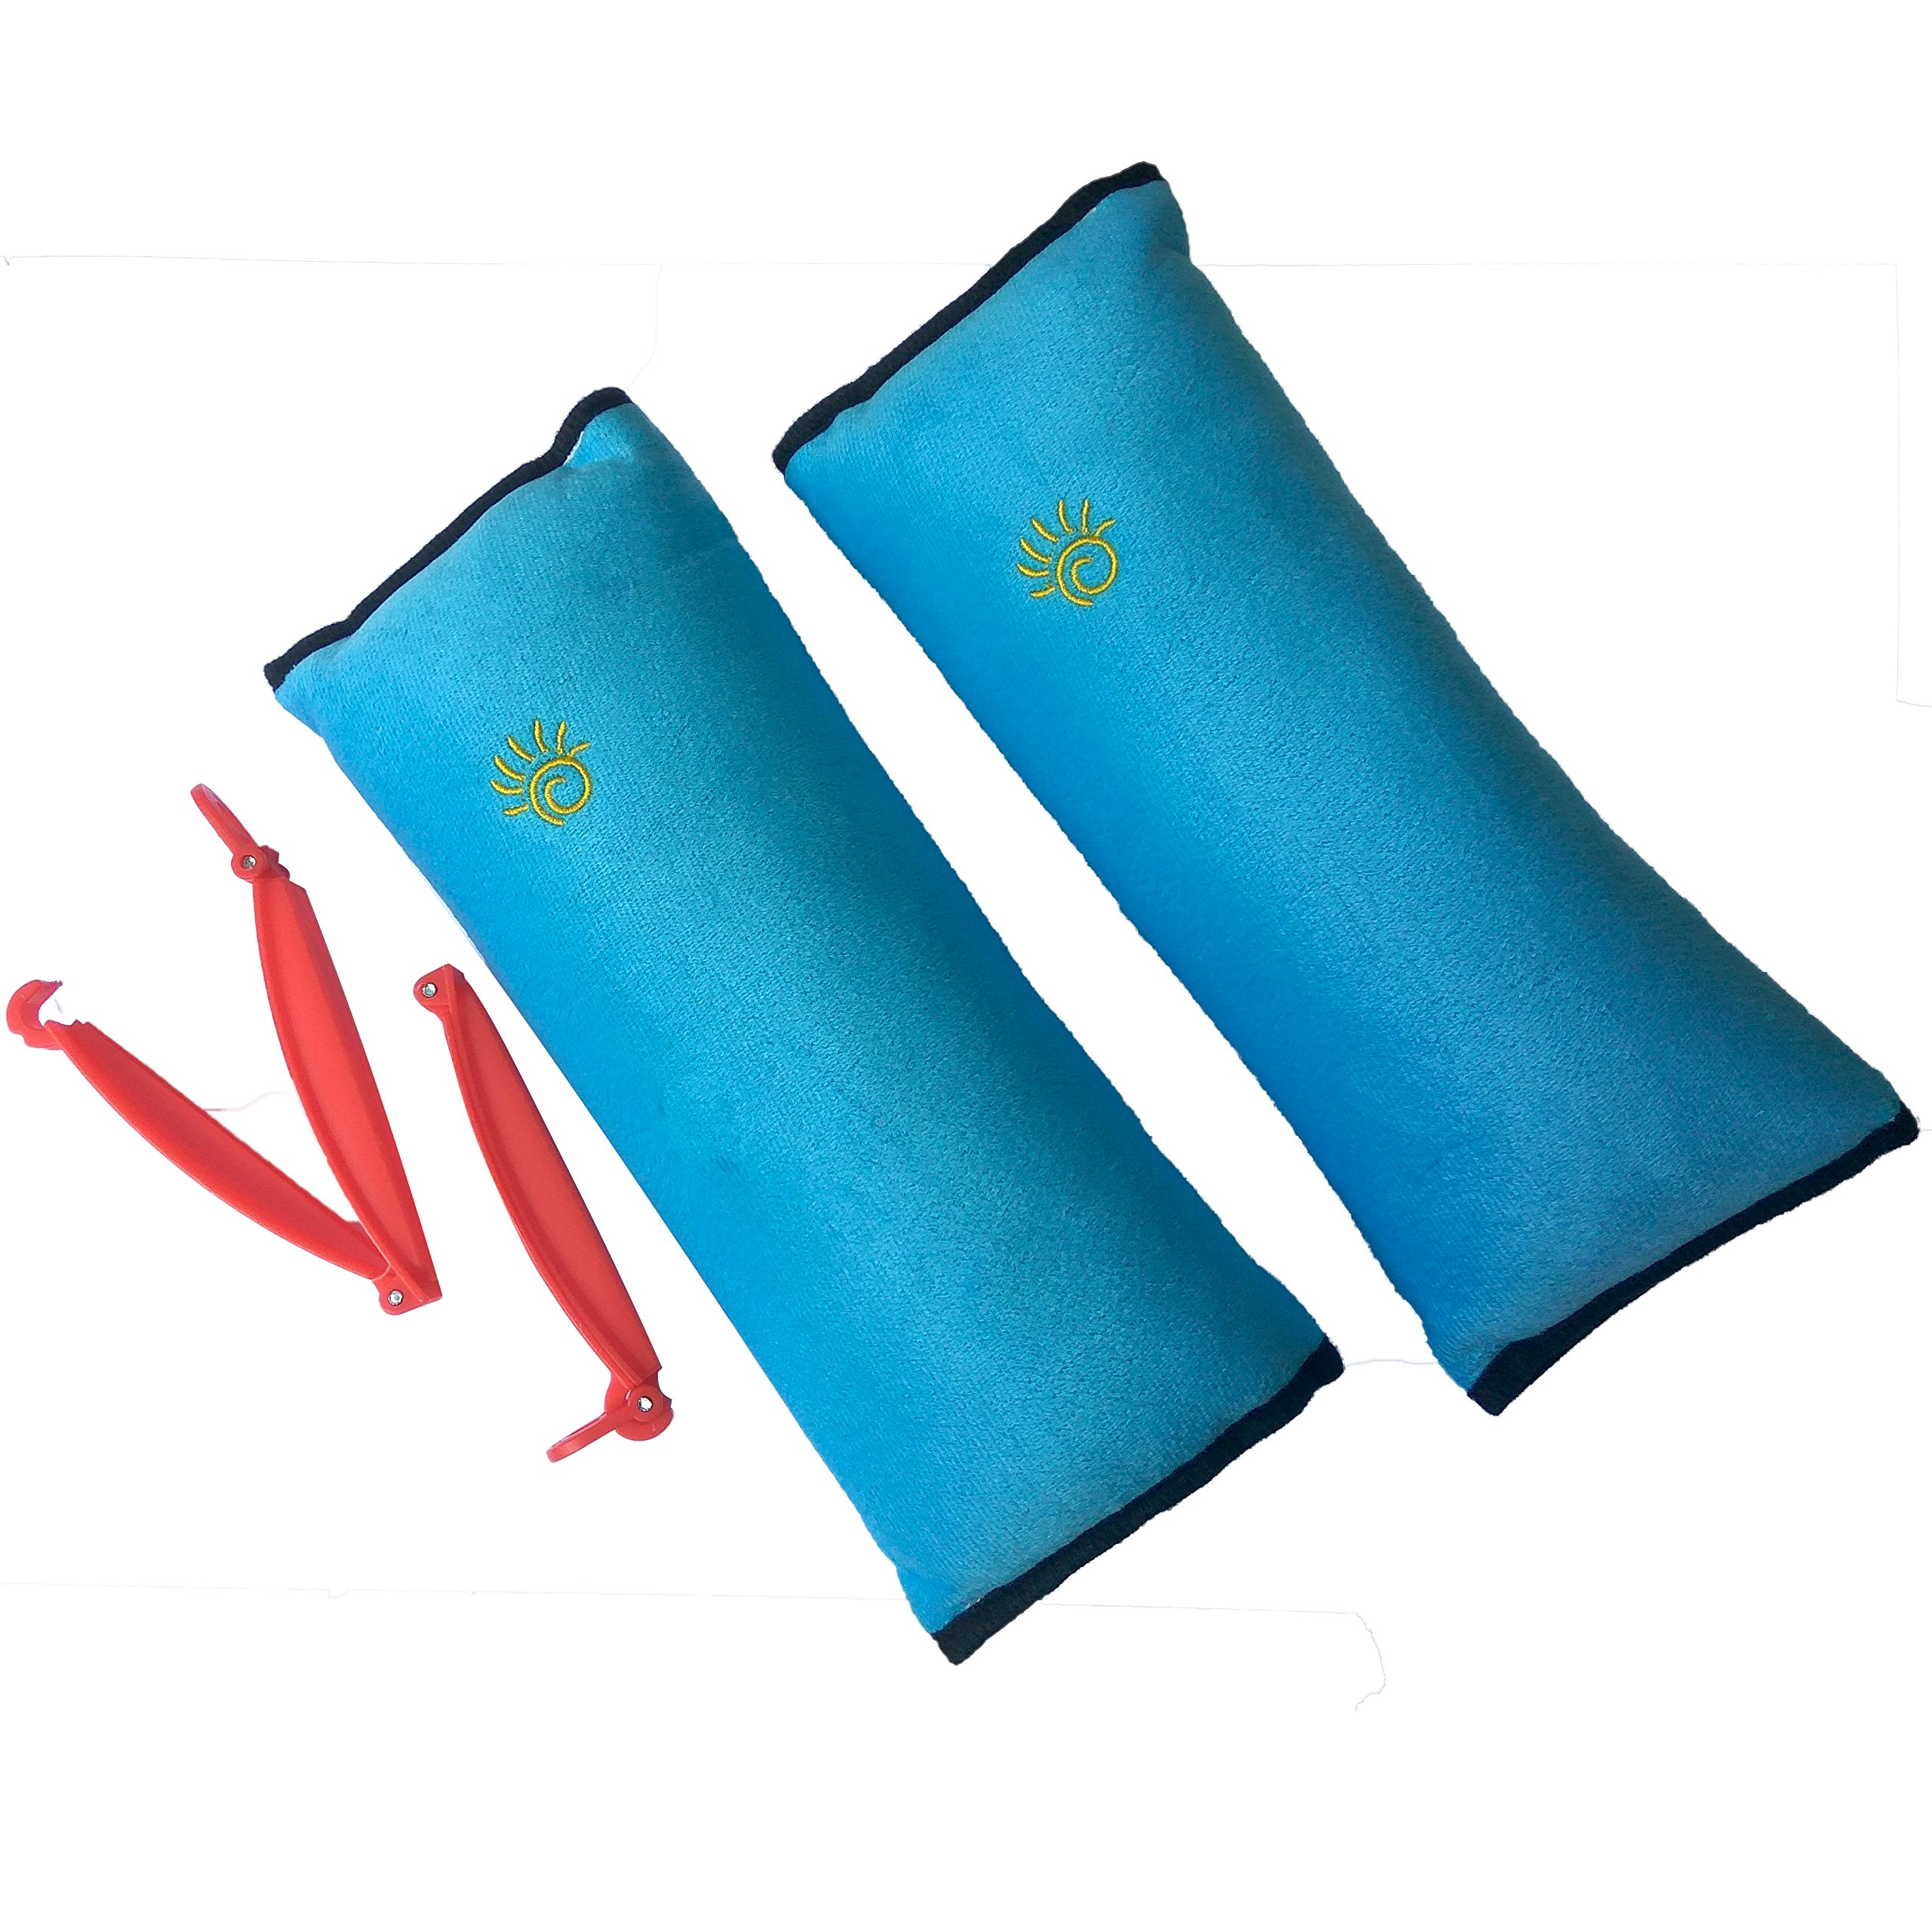 2 Car Seat Belt Pillows for Kids with 2 Seatbelt Clip - Headrest Neck Support Pads - Washable Covers - Adjust Vehicle Seat Belt Cushion for Children